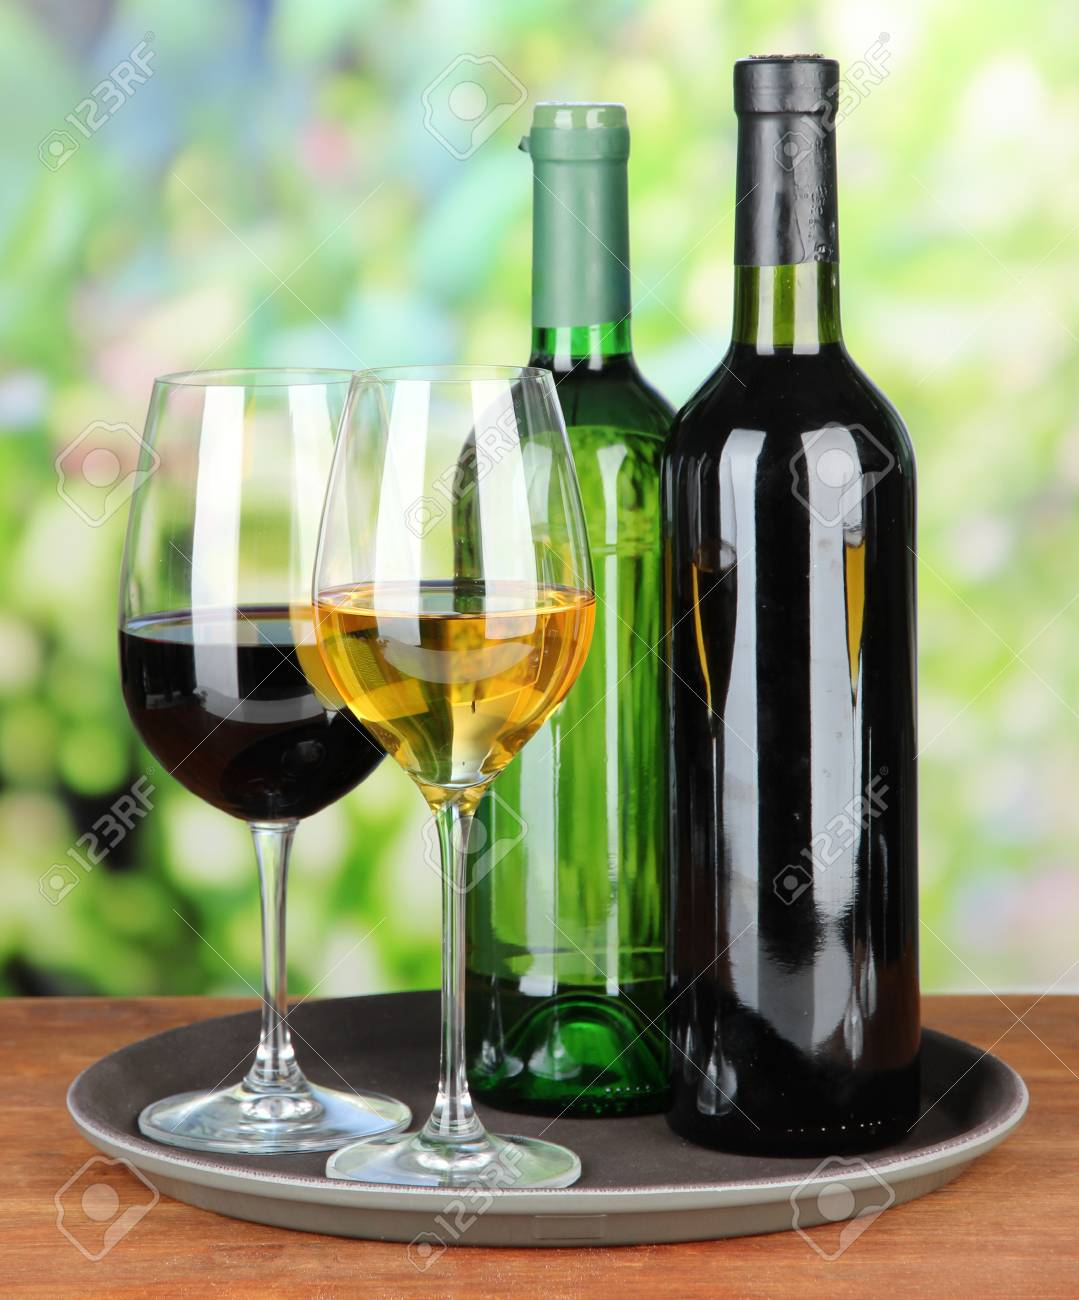 wine bottles and glasses of wine on tray on bright background stock